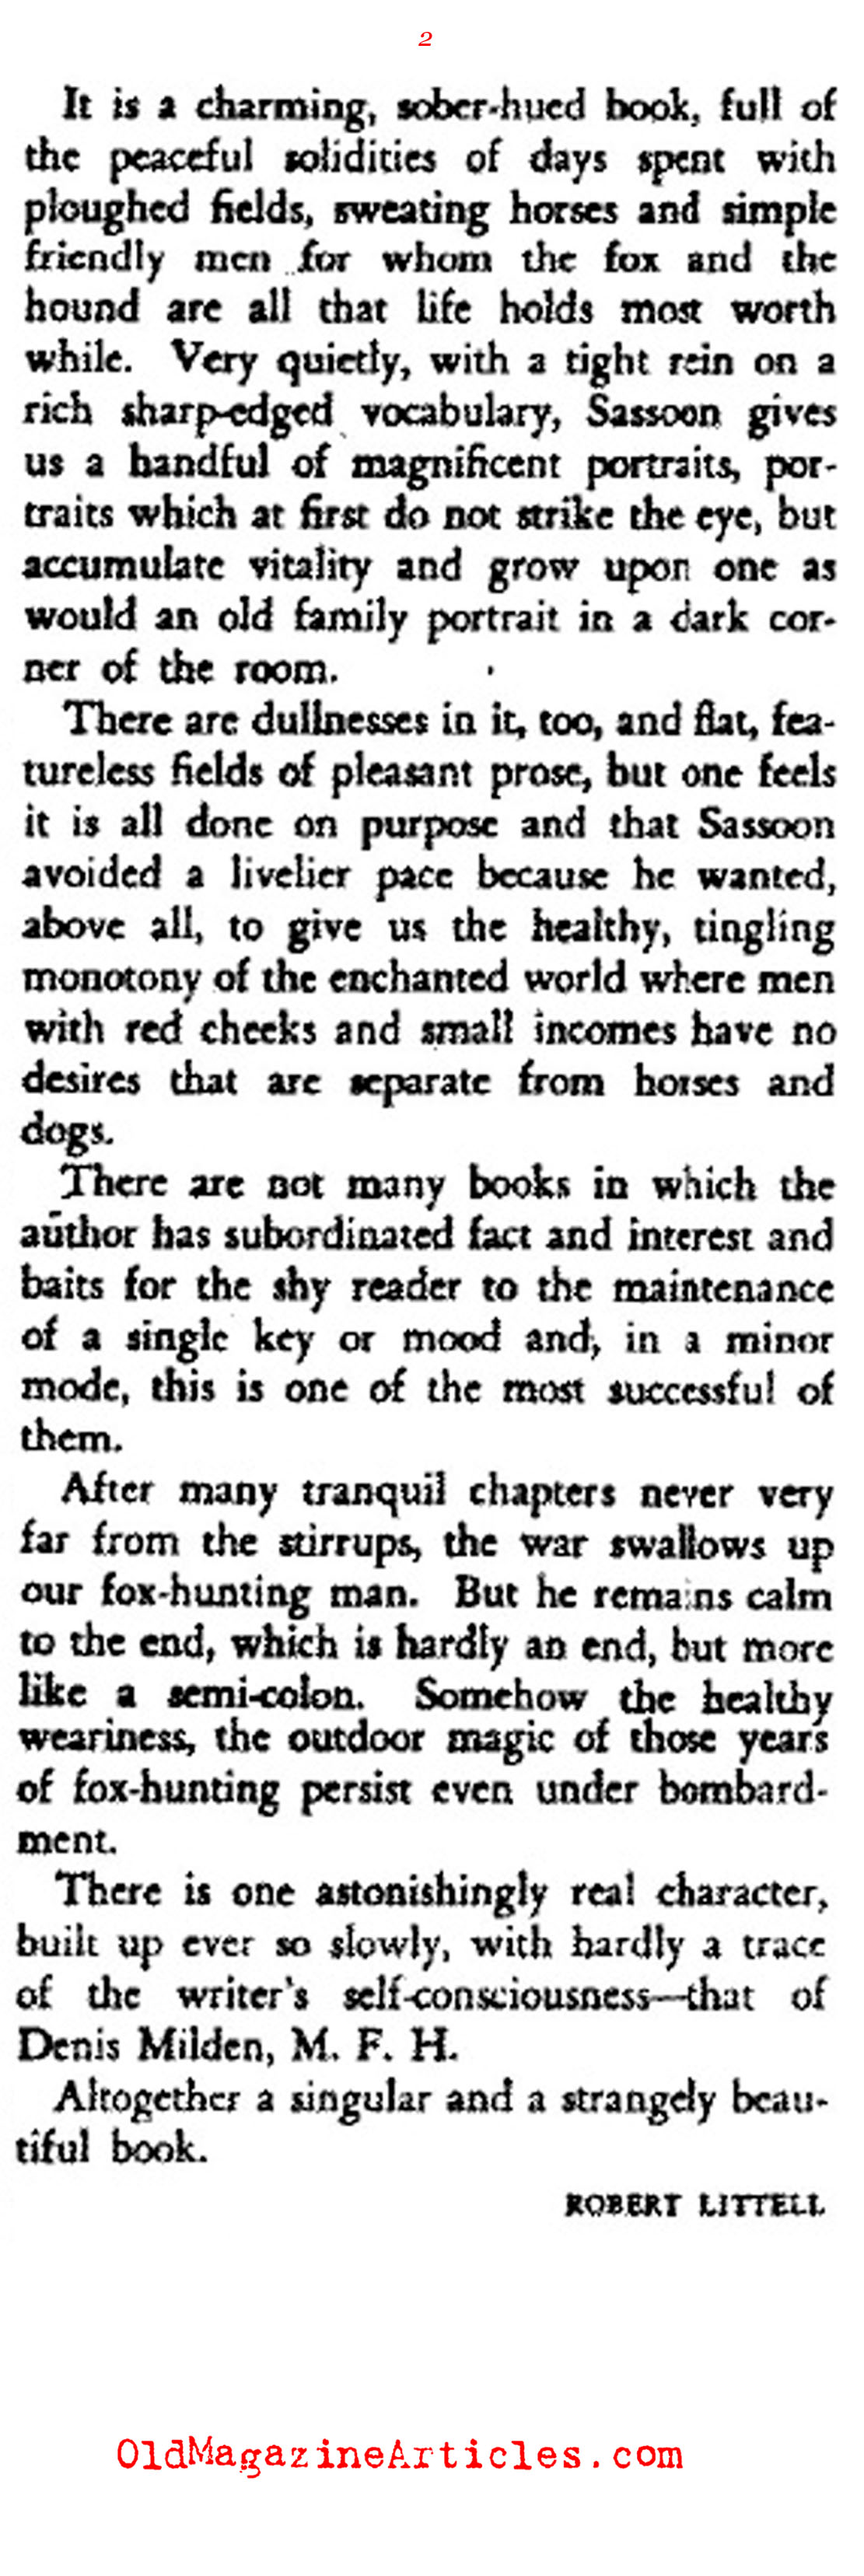 Memoirs of a Fox-Hunting Man (The Bookman, 1929)